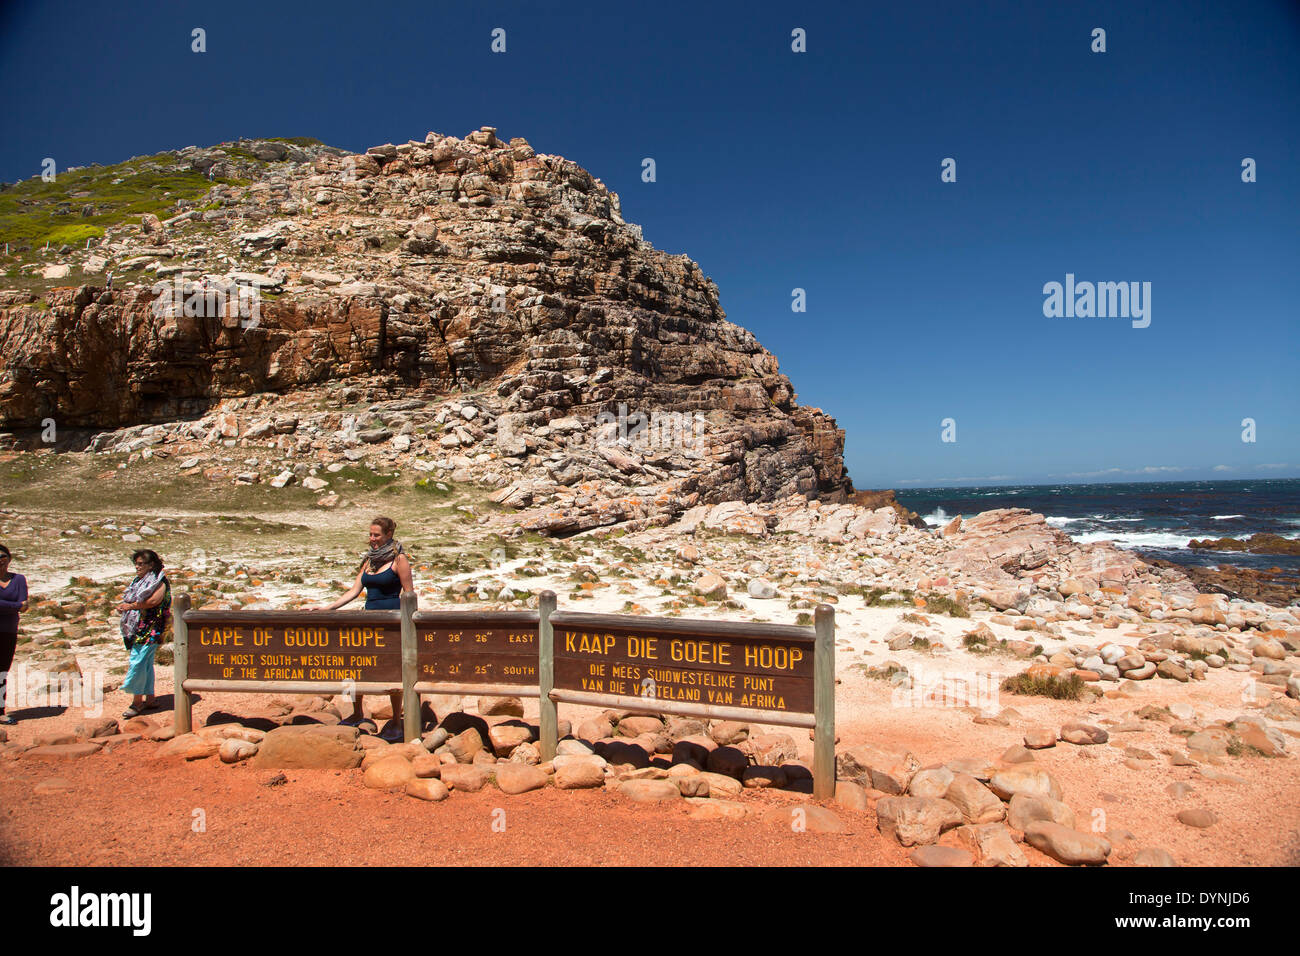 Cape of Good Hope, Cape Point, Cape Town, Western Cape, South Africa - Stock Image